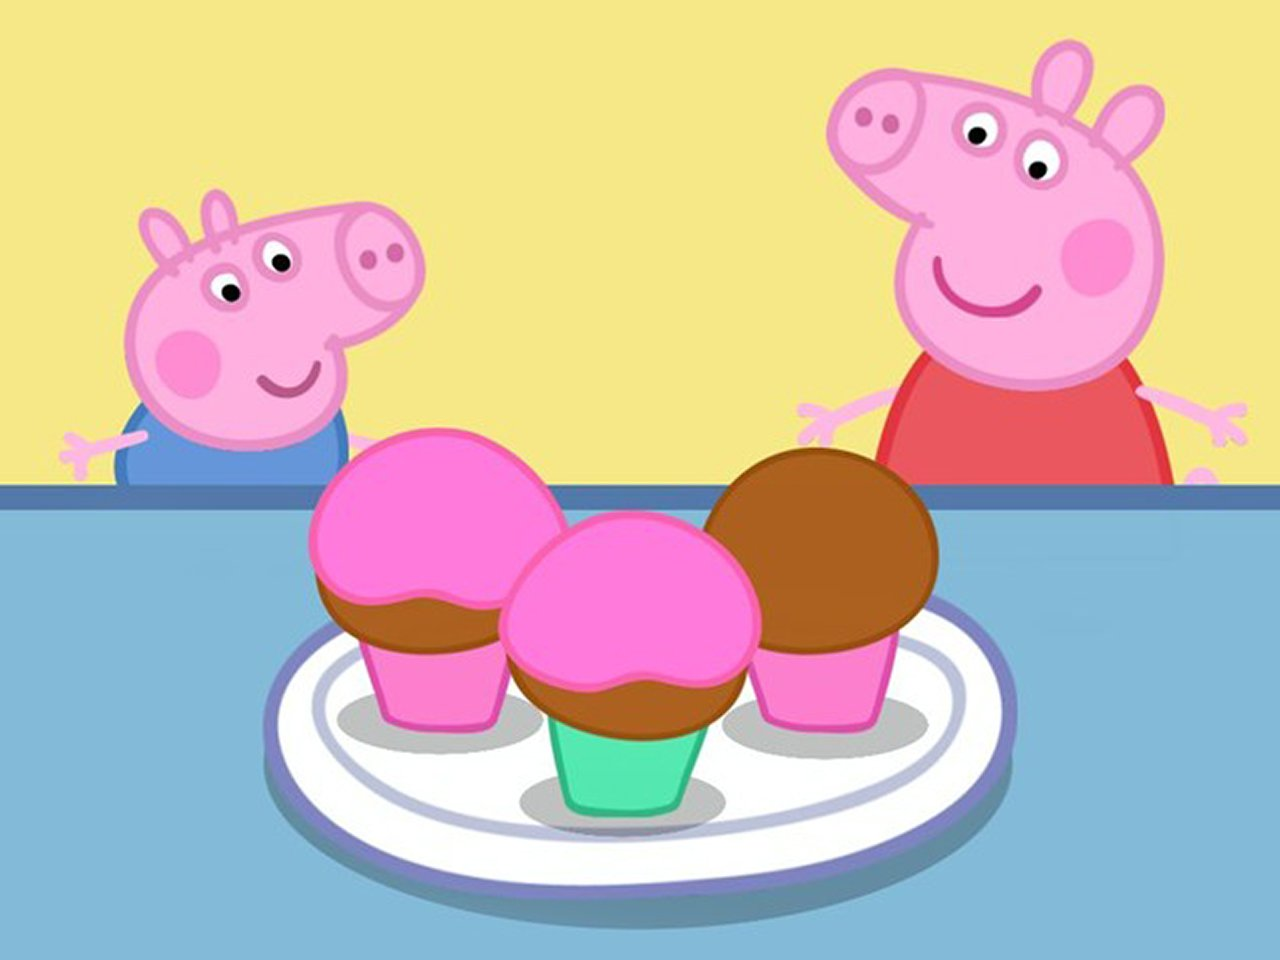 Peppa Pig Cookies Wallpaper Toonswallpaperscom 1280x960 pixel 1280x960